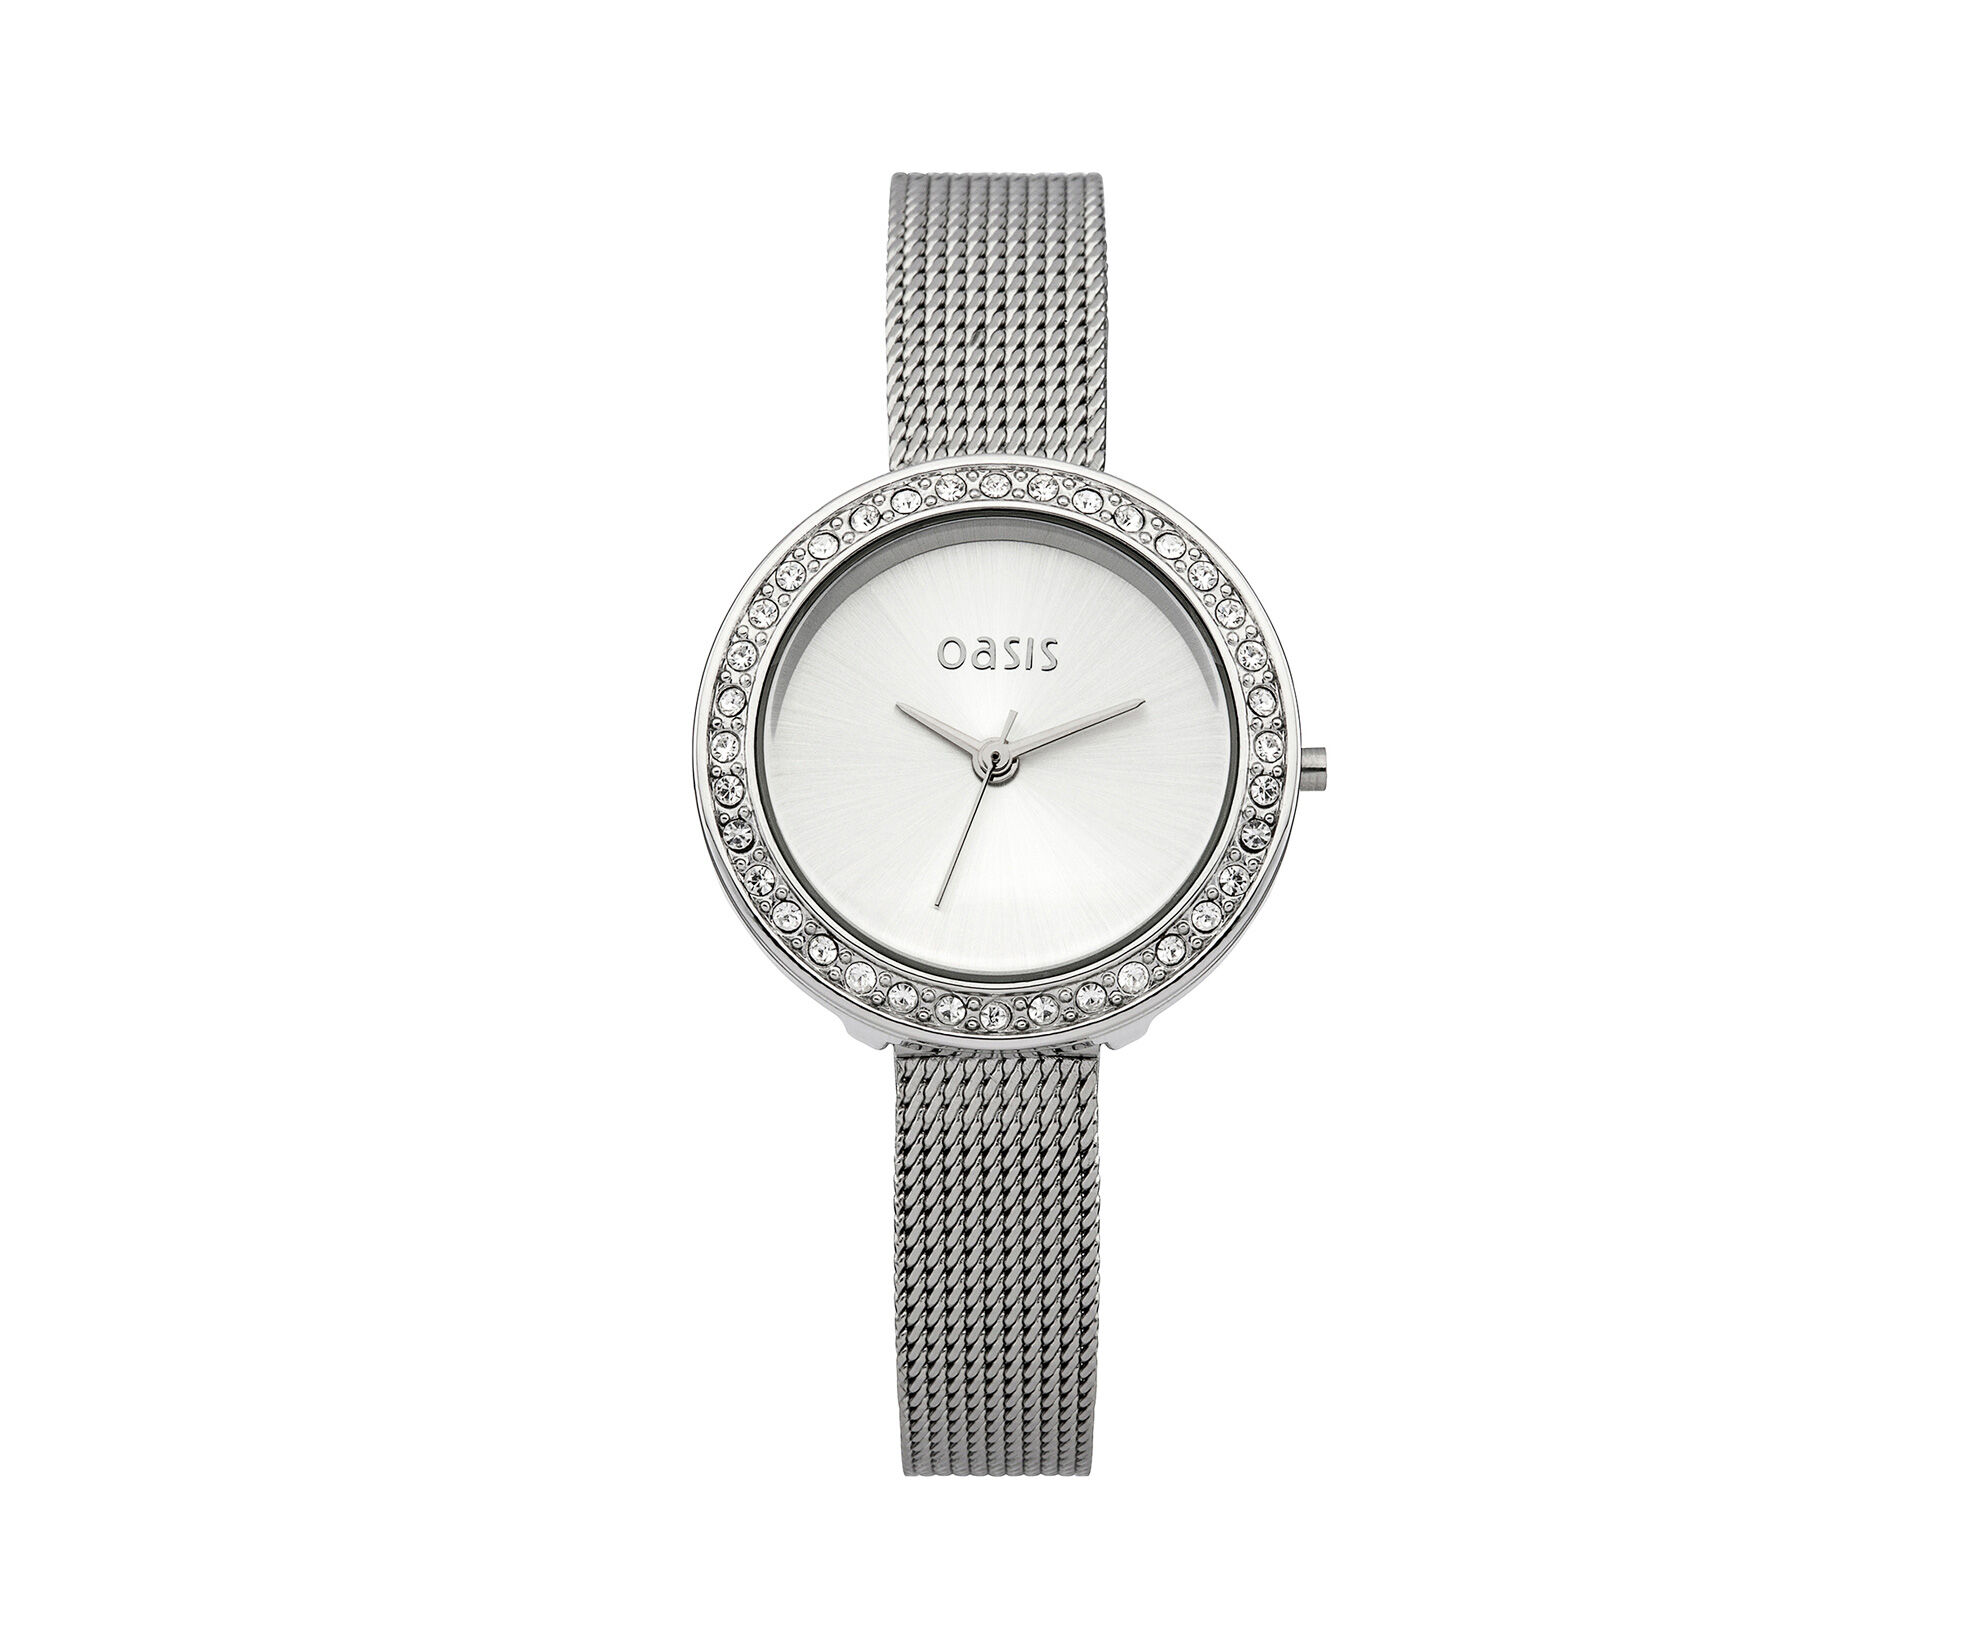 Oasis, Mesh Strap Silver Dial Watch Silver 0